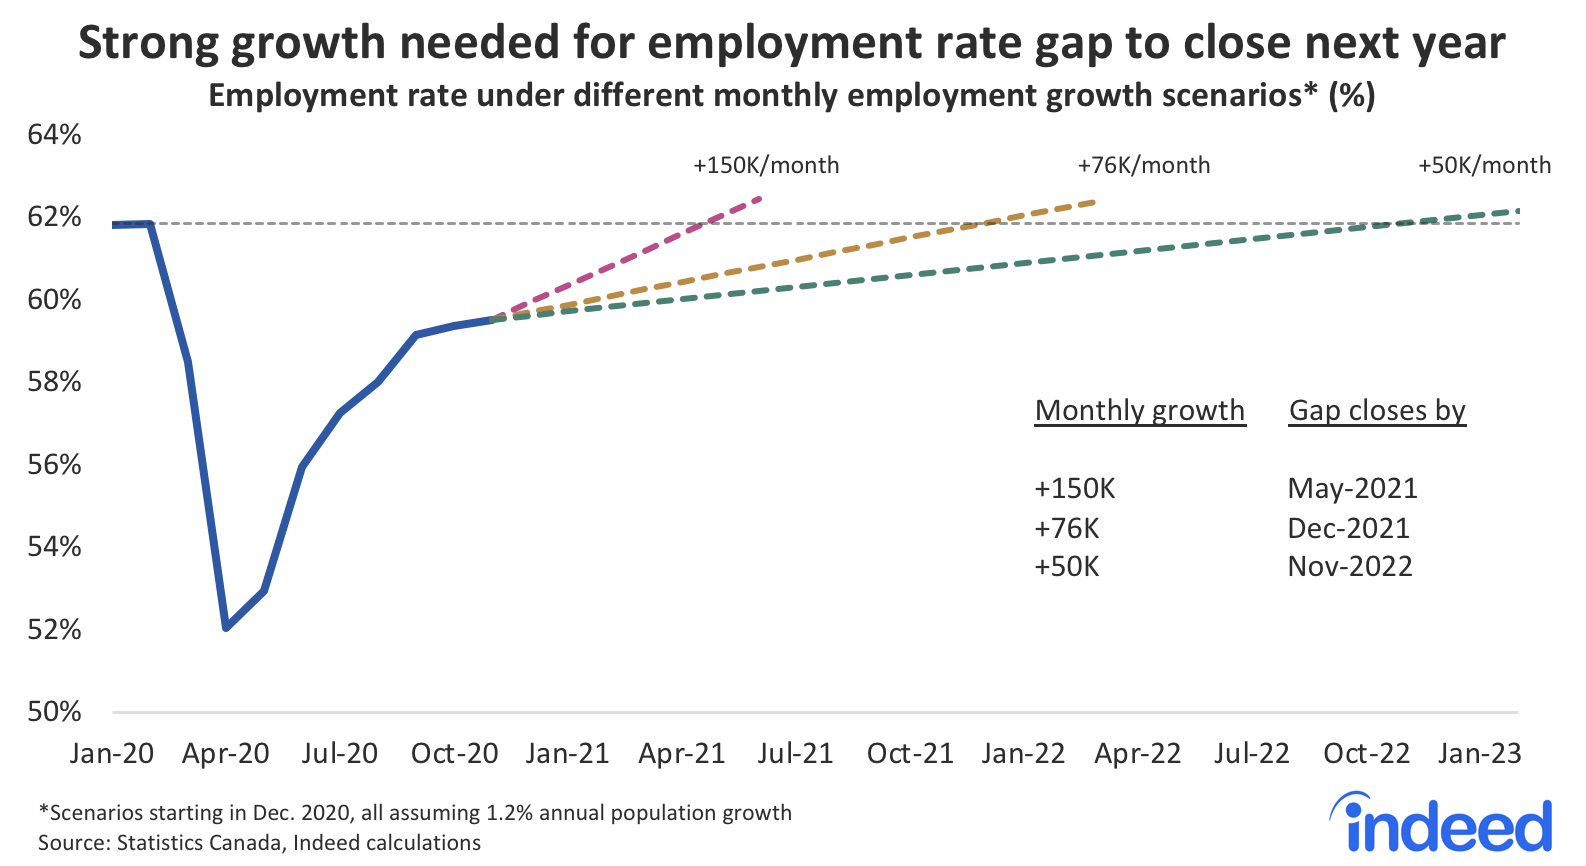 Line graph showing strong growth needed for employment rate gap to close next year